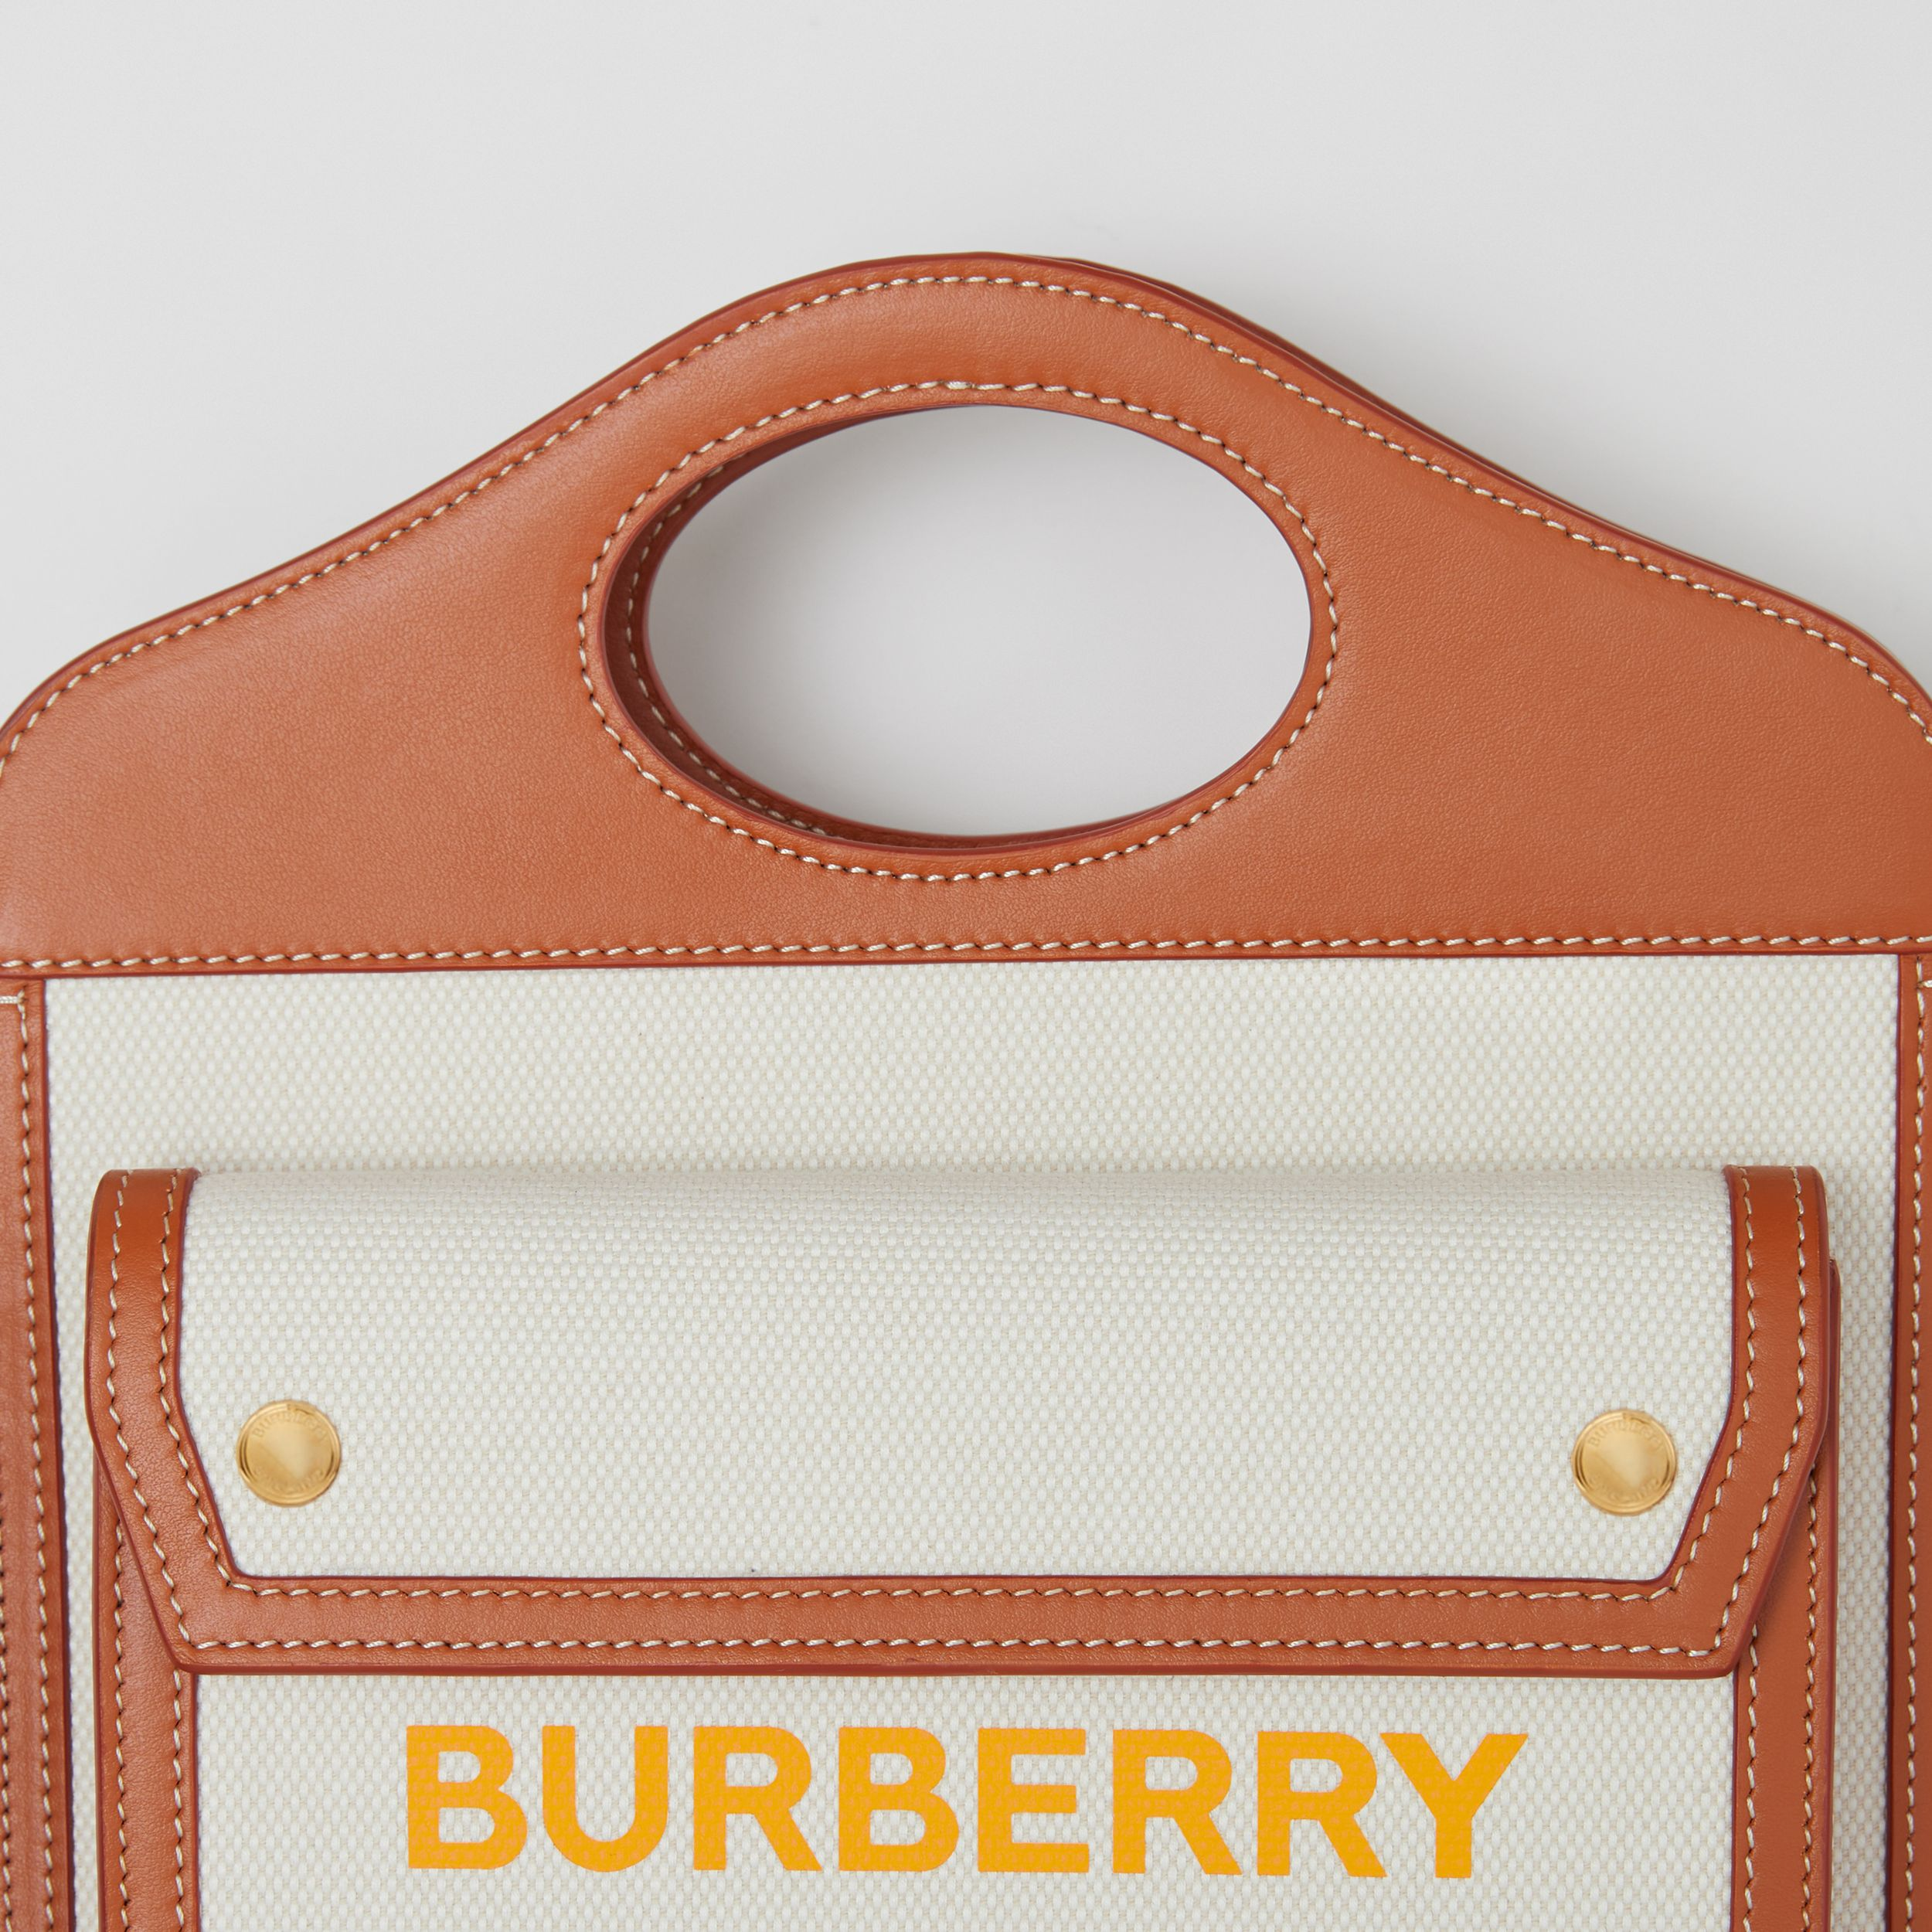 Mini Two-tone Canvas and Leather Pocket Bag in Natural/dark Amber - Women | Burberry - 2